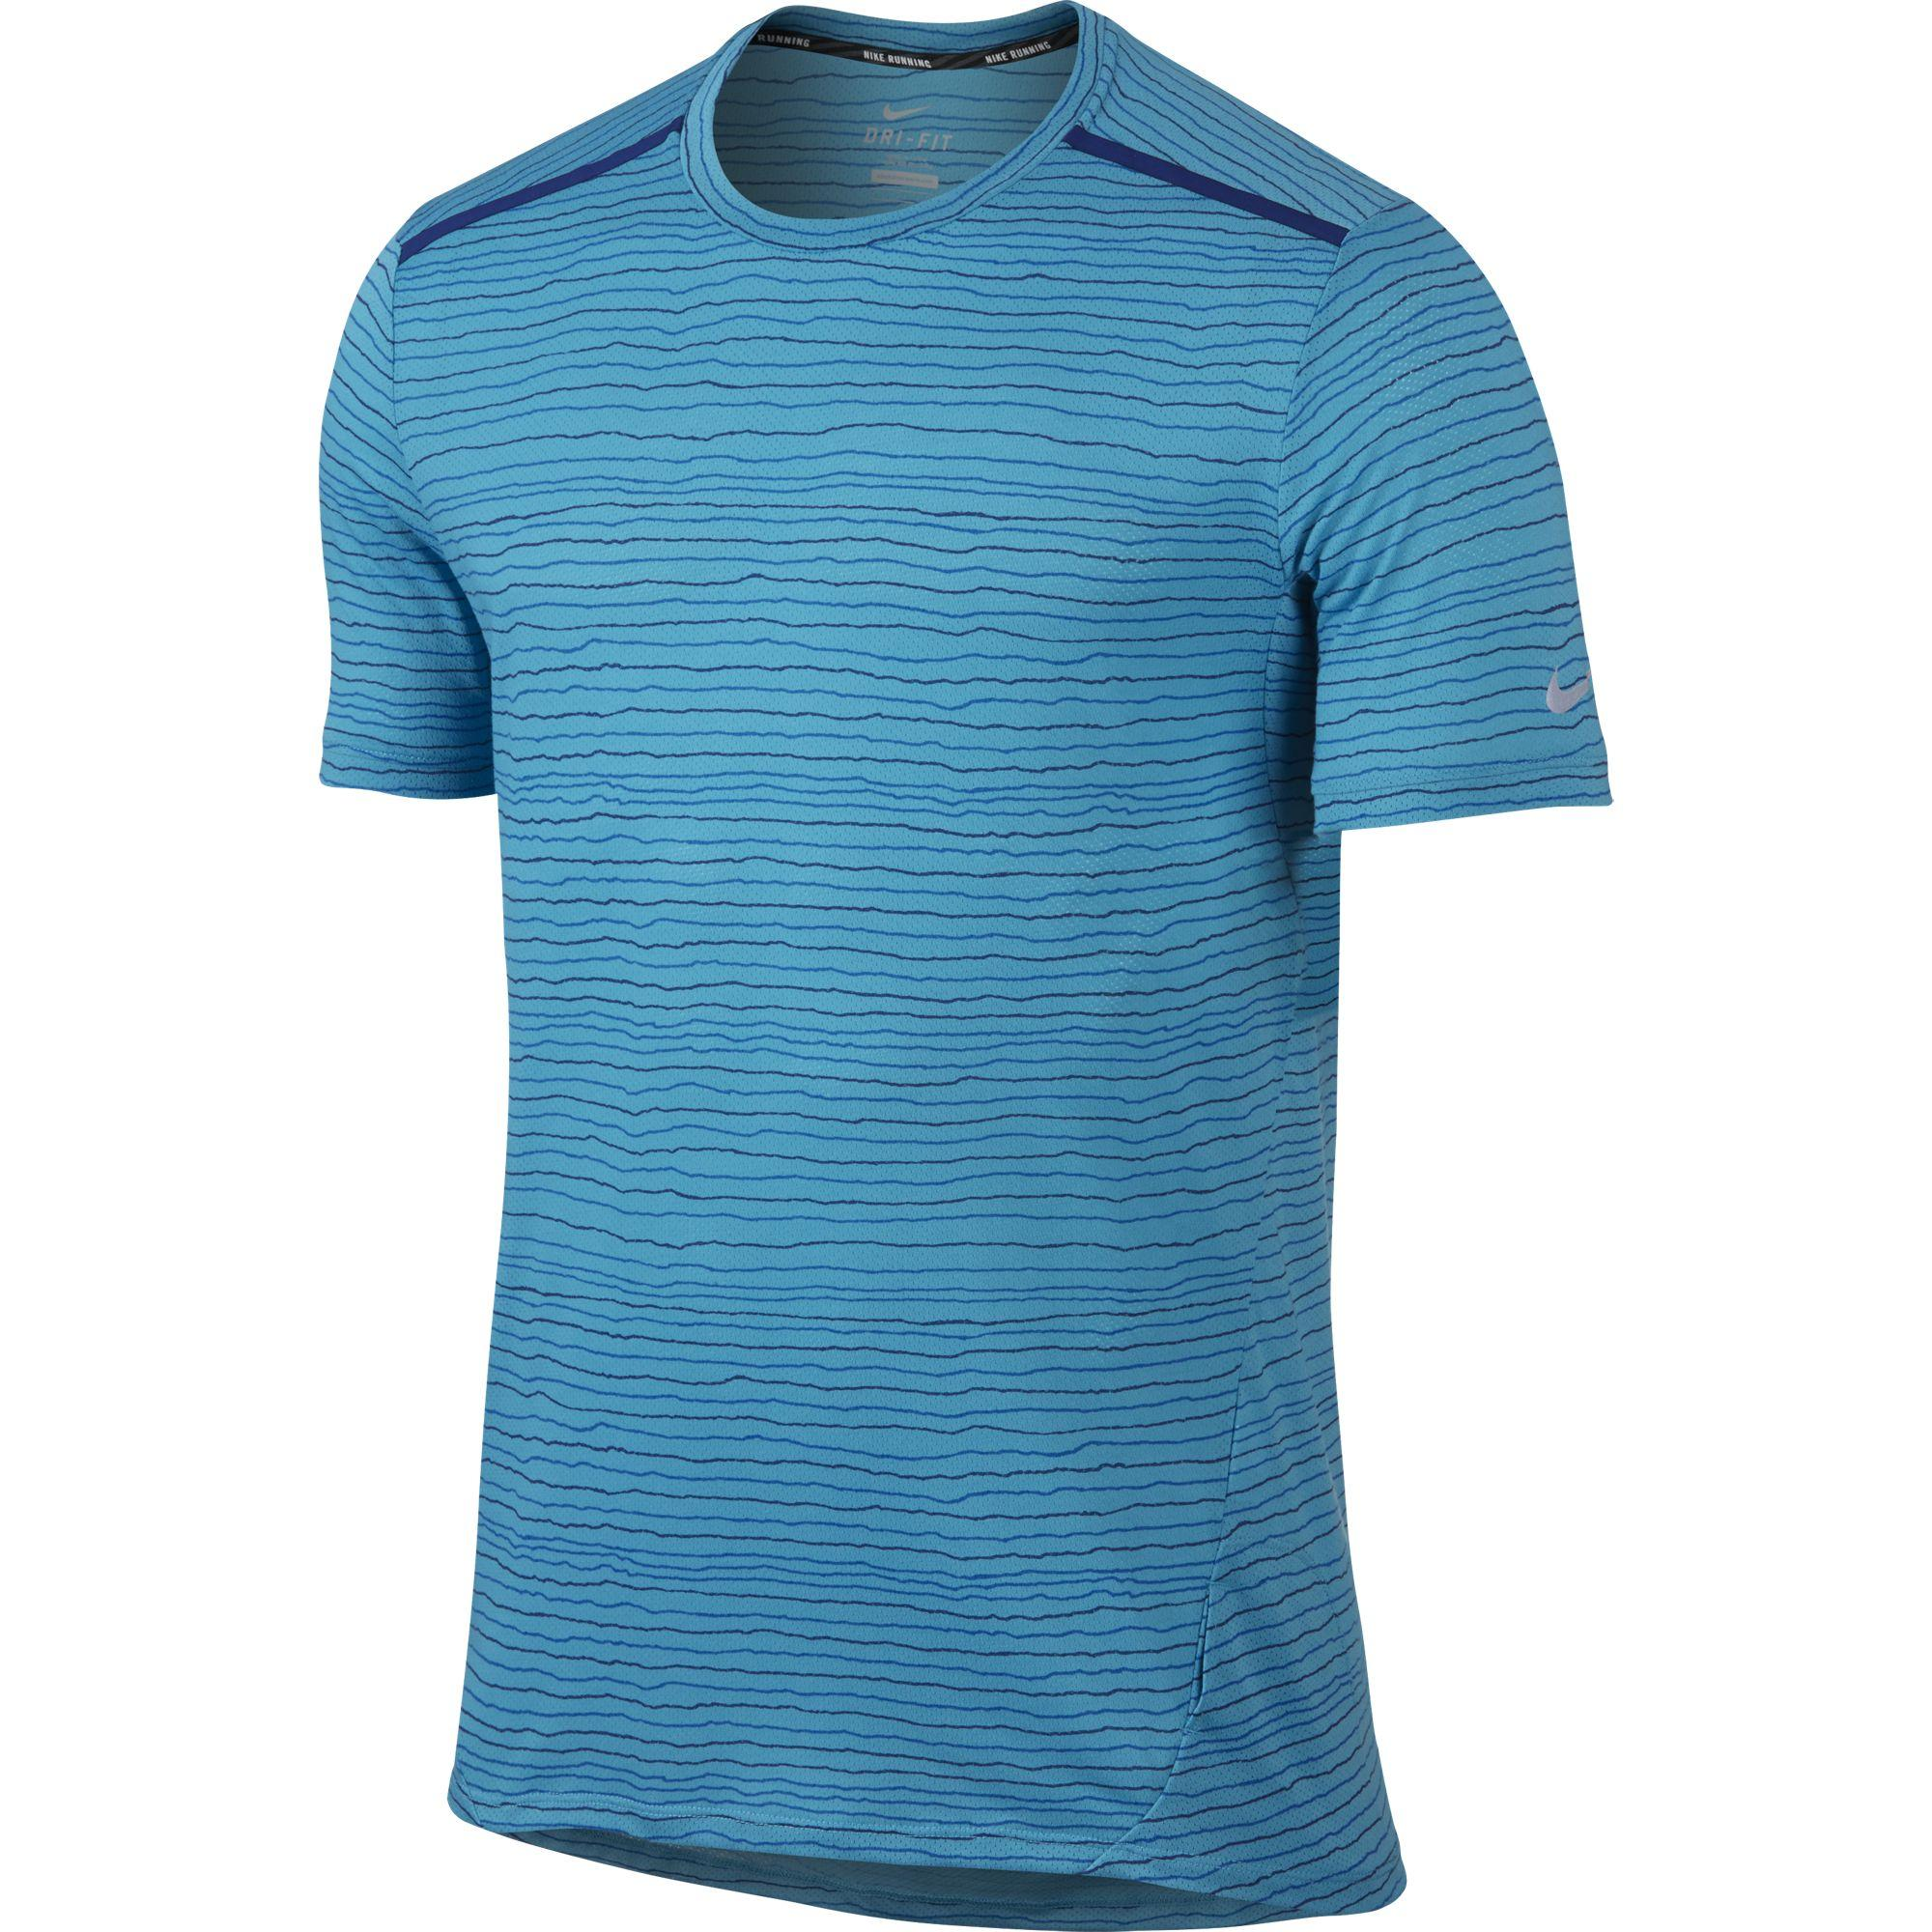 Nike Dri-FIT Cool Tailwind Stripe Short Sleeve 346725